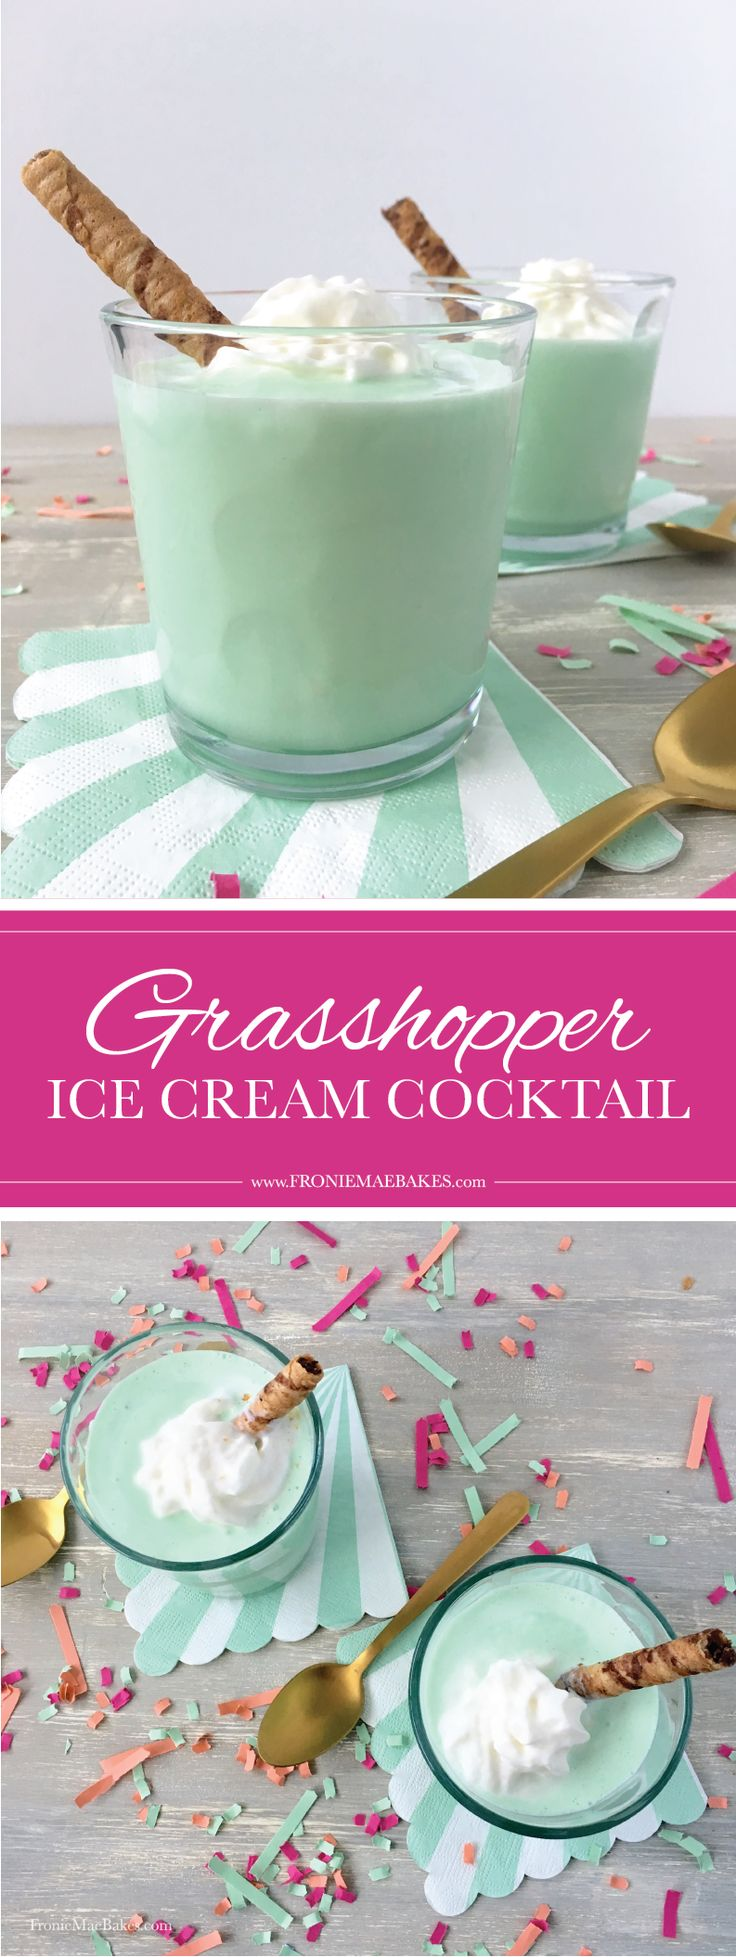 Make this cool and creamy Grasshopper ice cream cocktail with a few ingredients and wow your guests! Full recipe on www.FronieMaeBakes.com